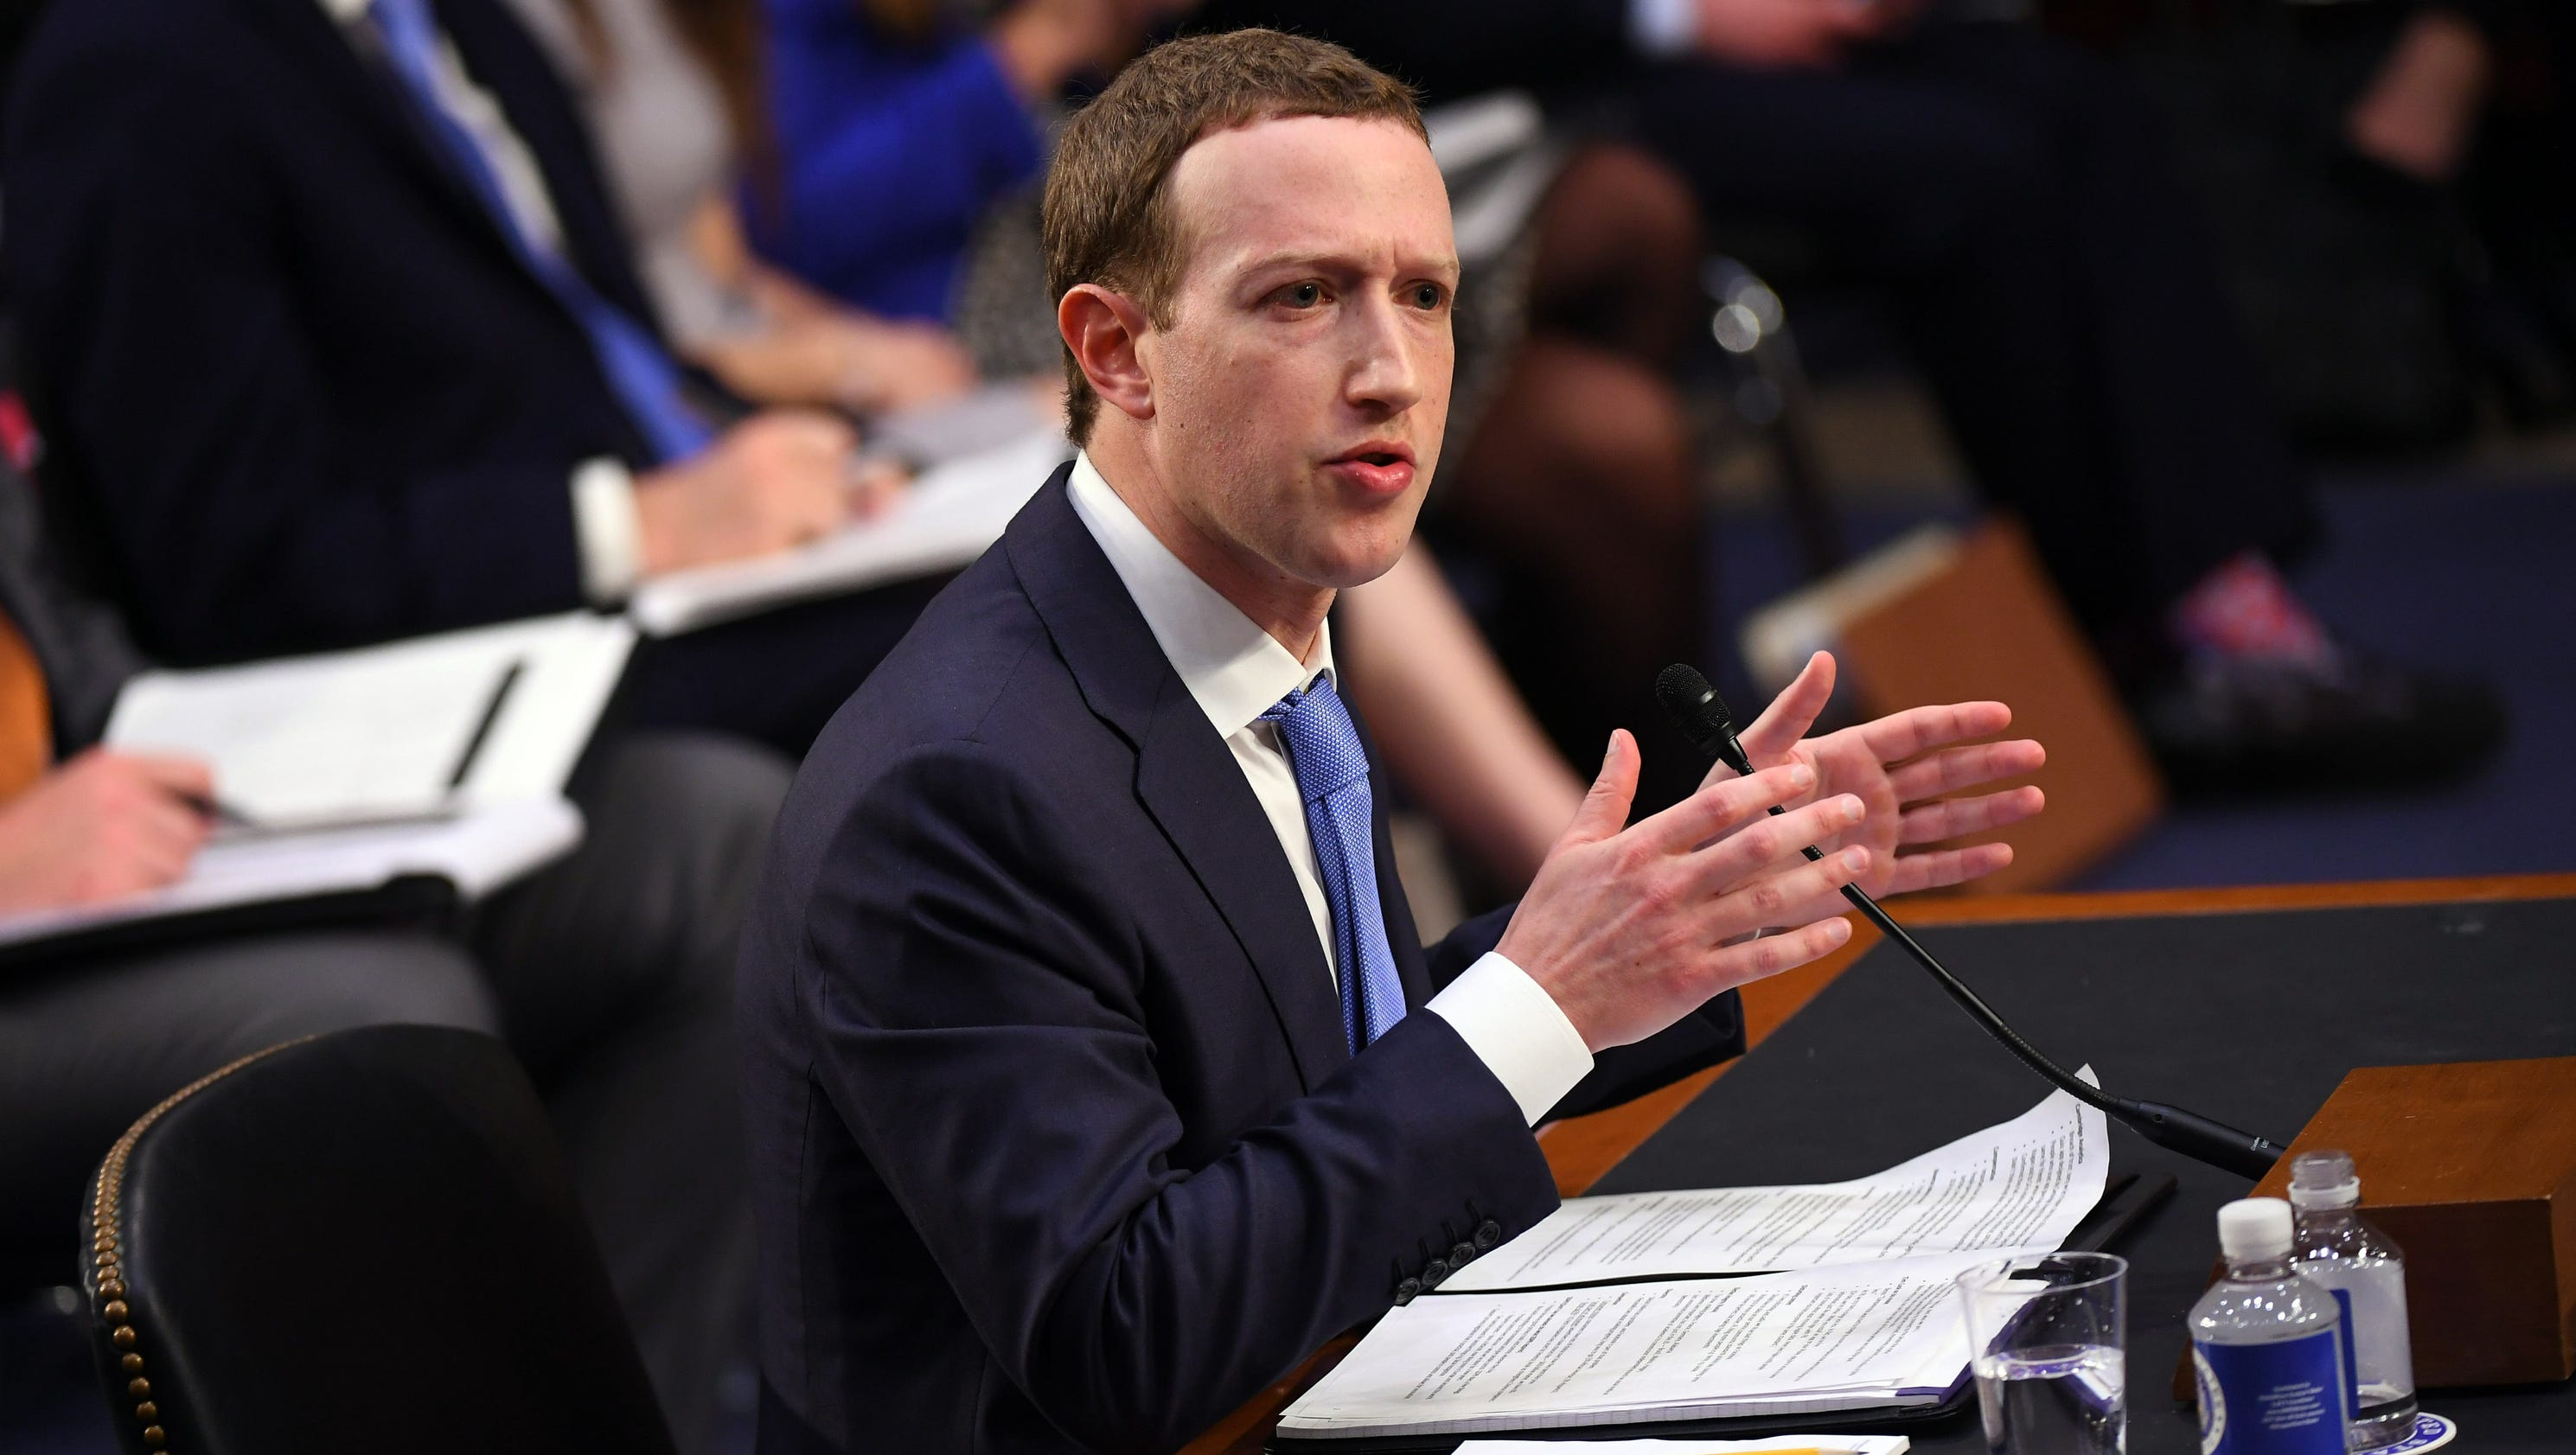 facebook ceo mark zuckerberg media essay Facebook co-founder and ceo mark zuckerberg took out full-page advertisements in major us and british newspapers to apologize for a breach of trust after it was discovered cambridge analytica.